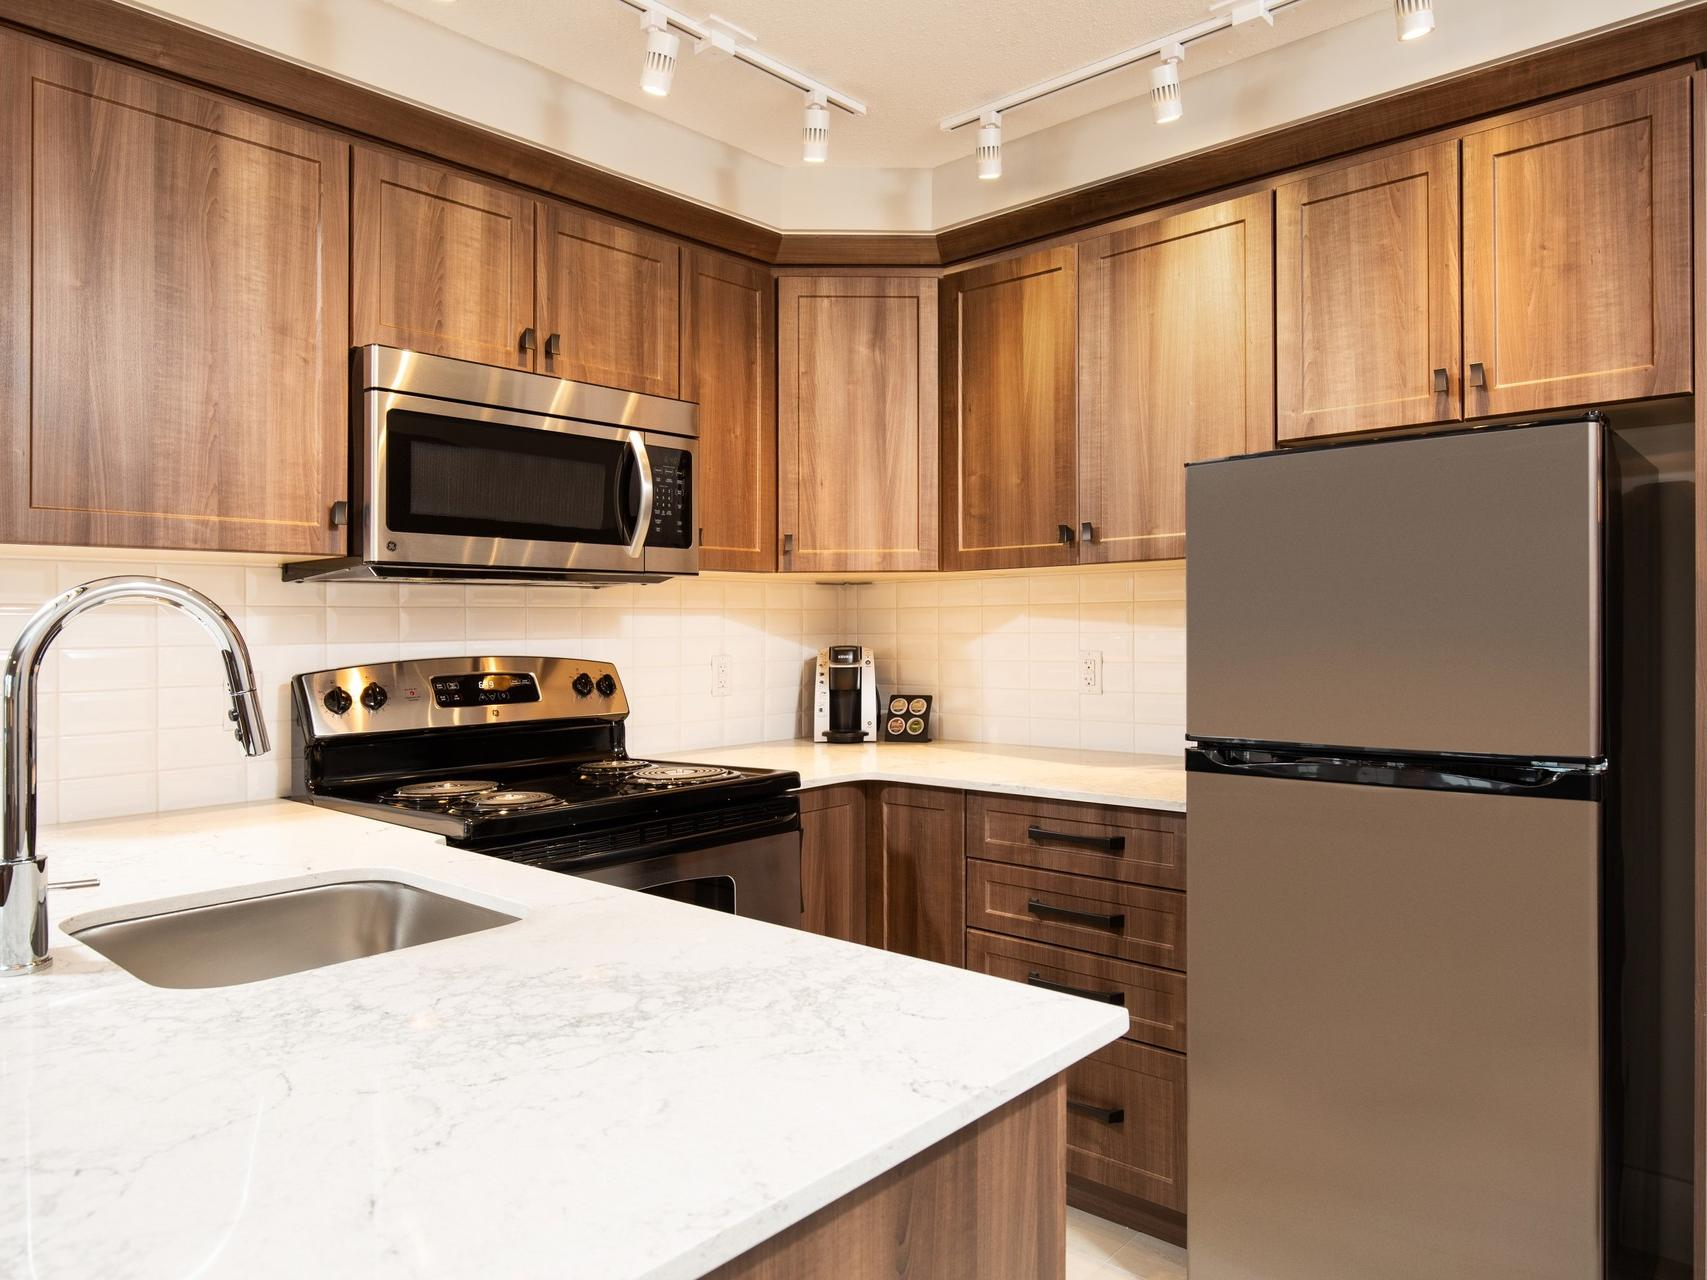 a refrigerator, microwave, and stove in a kitchen